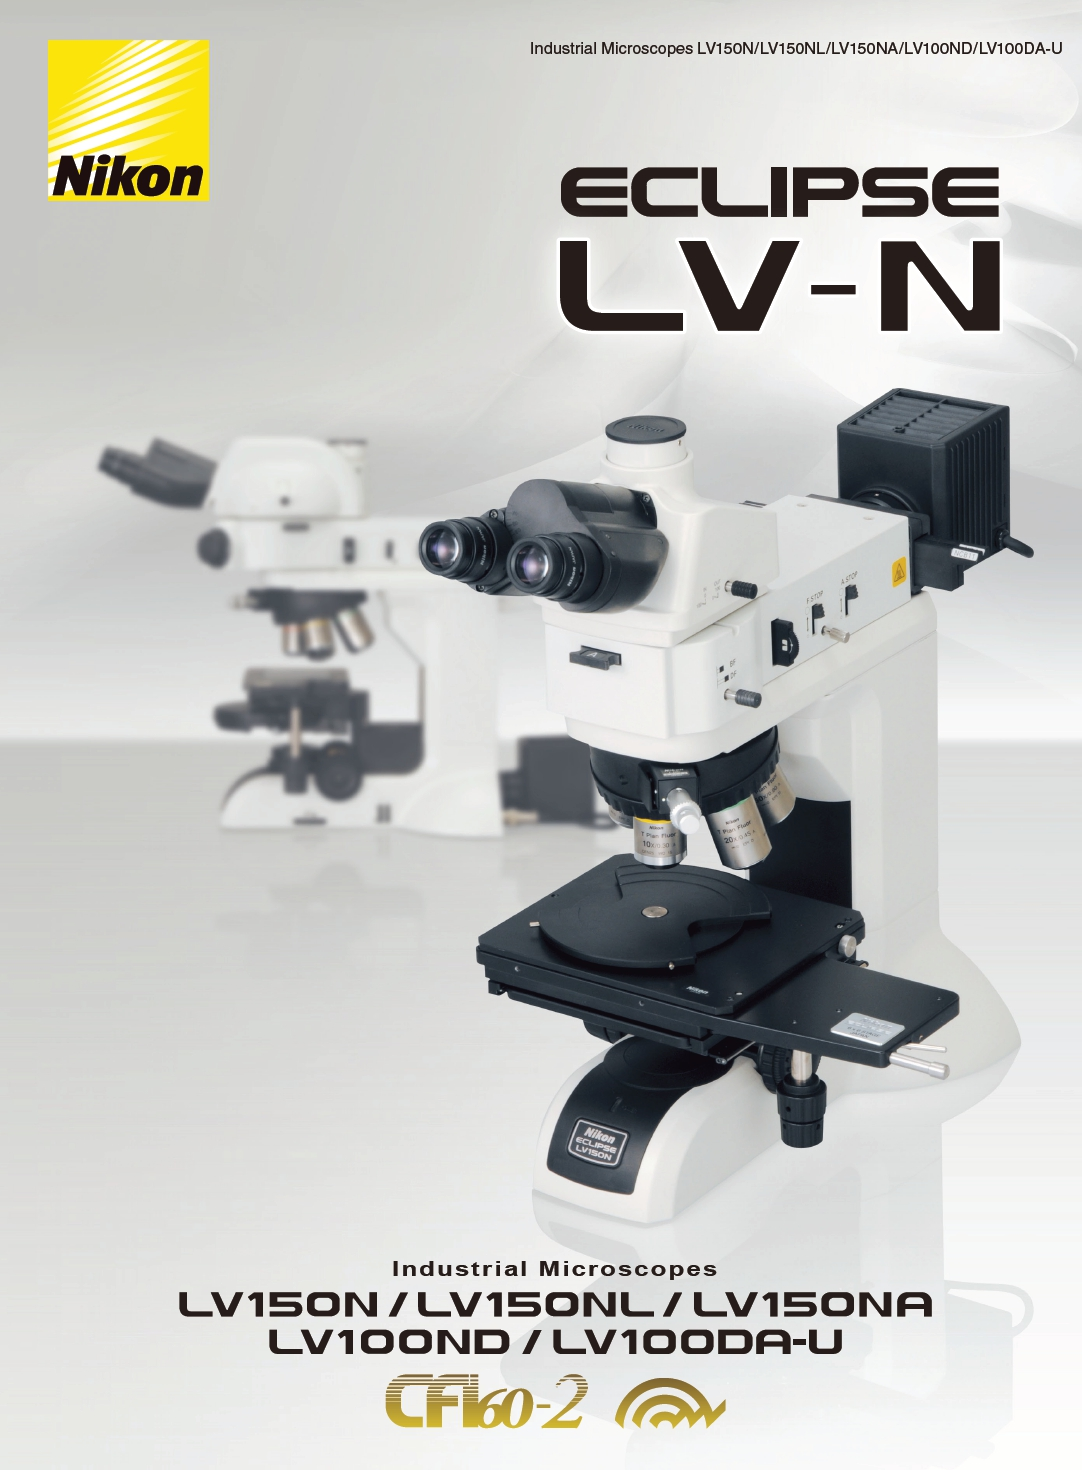 NIKON Industrial microscopes